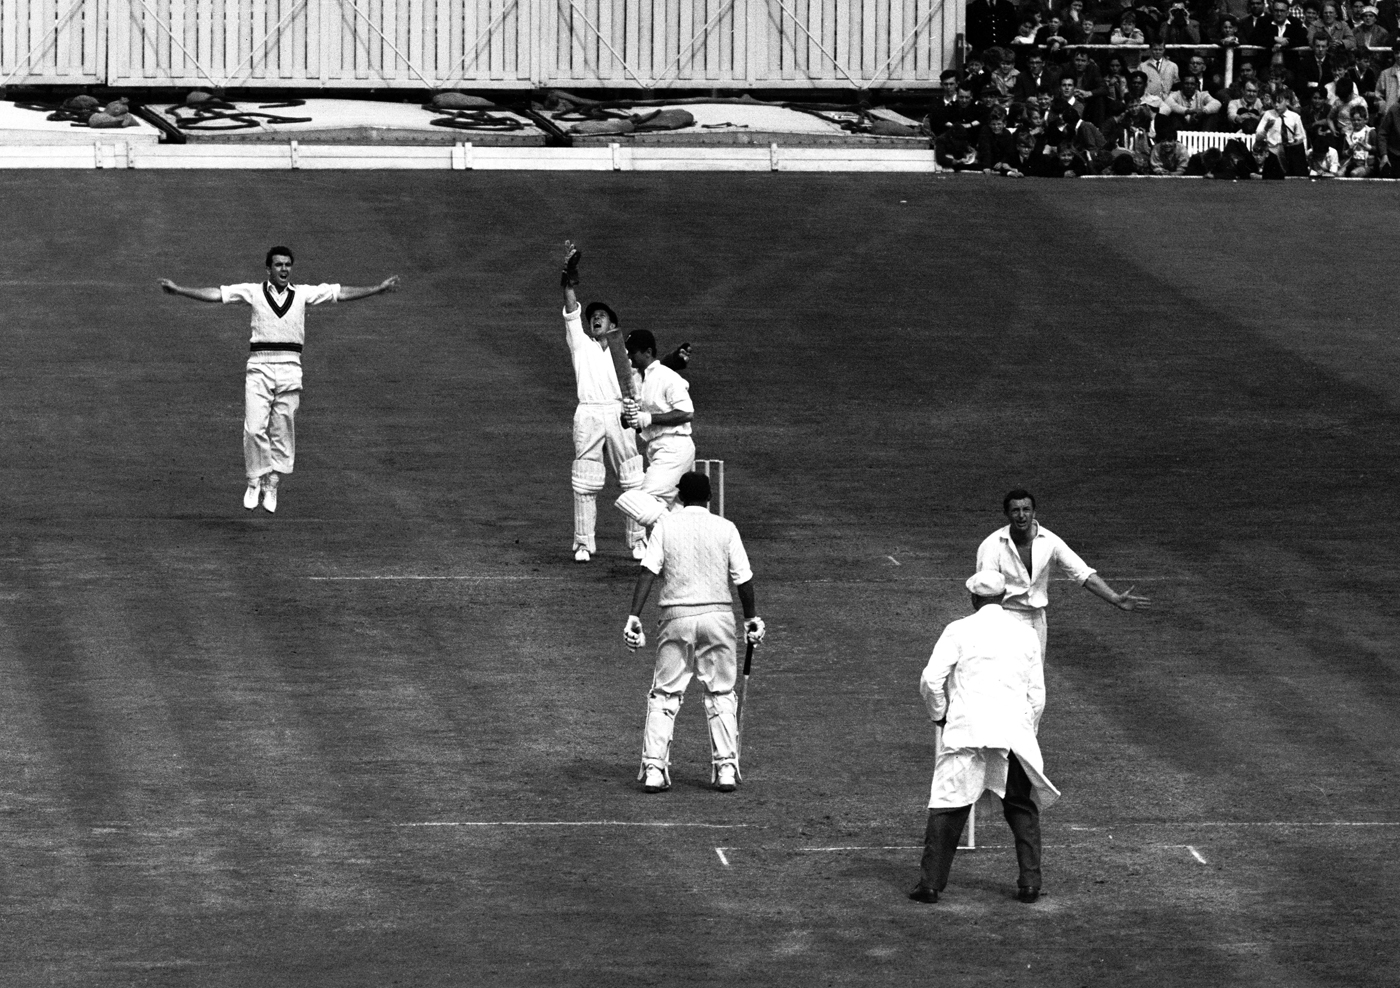 England were well on course at Old Trafford in 1961 before this wicket: Dexter c Grout b Benaud